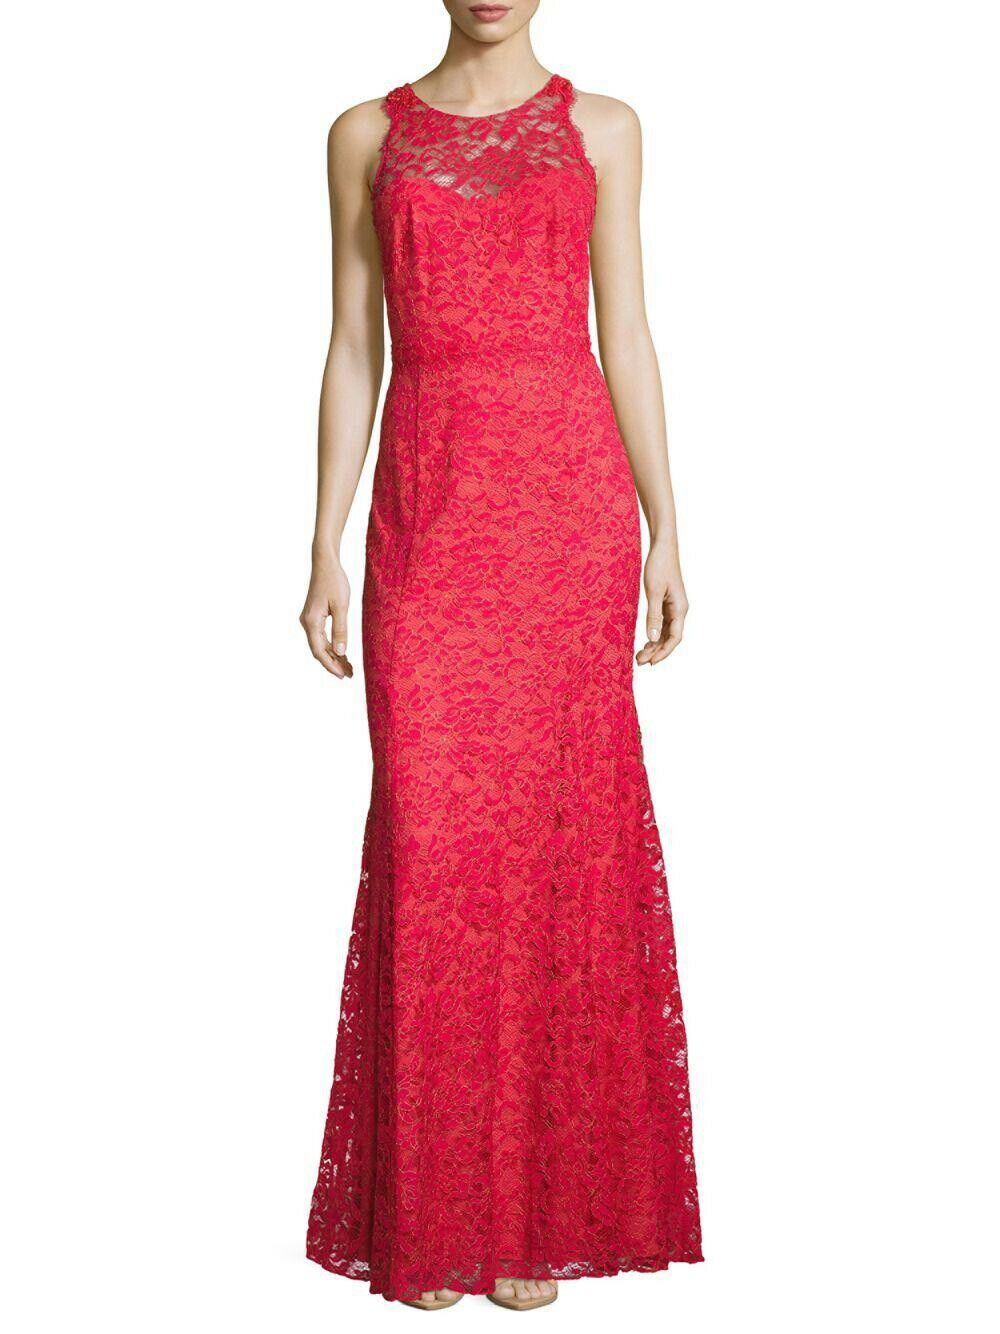 1195 NWT Marchesa Marchesa Marchesa Notte Sienna Beaded Lace Illusion Gown Size 2 50d90e